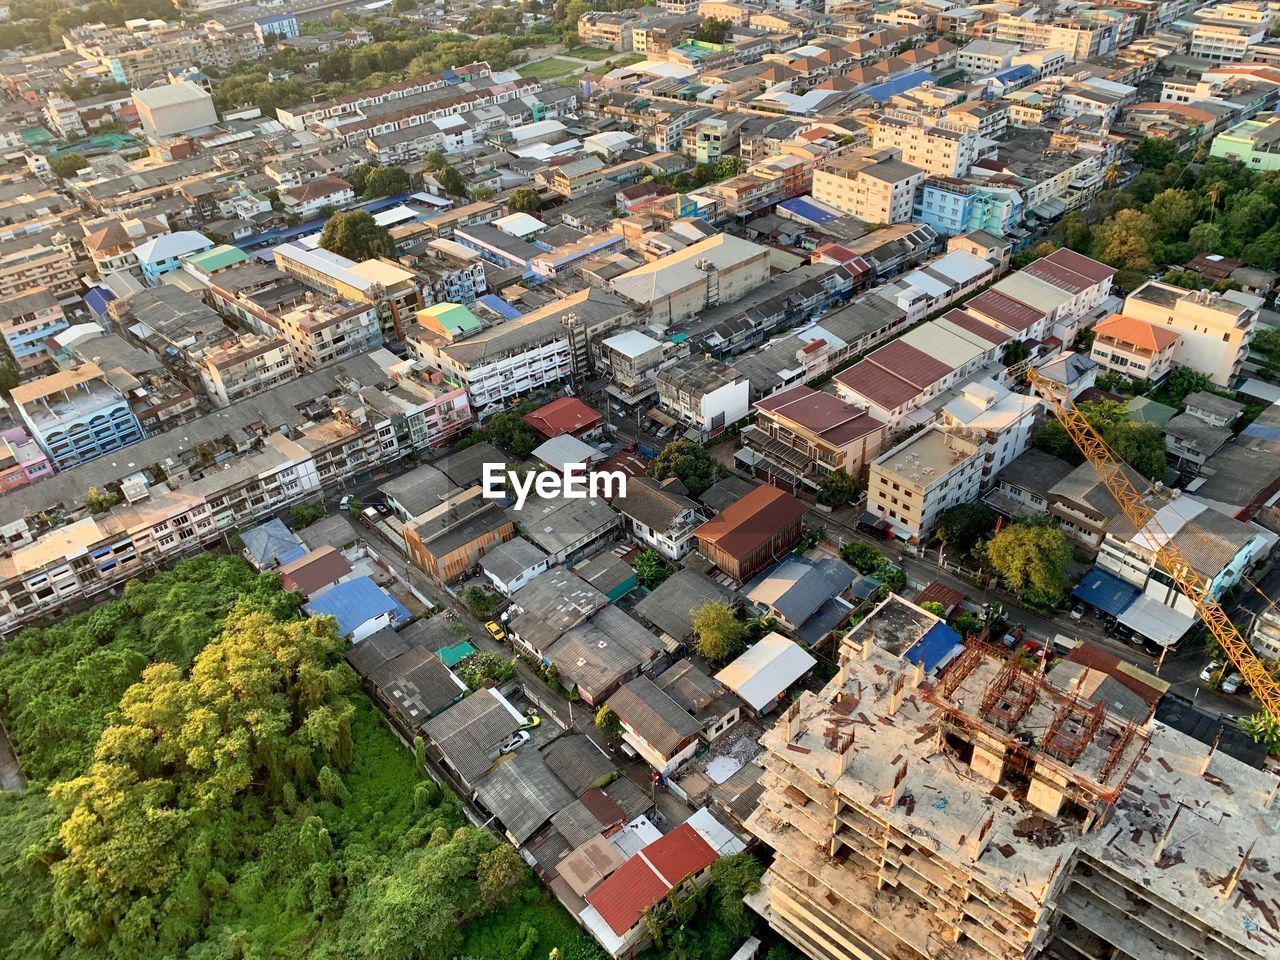 architecture, building exterior, residential district, high angle view, built structure, city, building, day, no people, aerial view, cityscape, plant, roof, nature, tree, outdoors, community, house, townscape, apartment